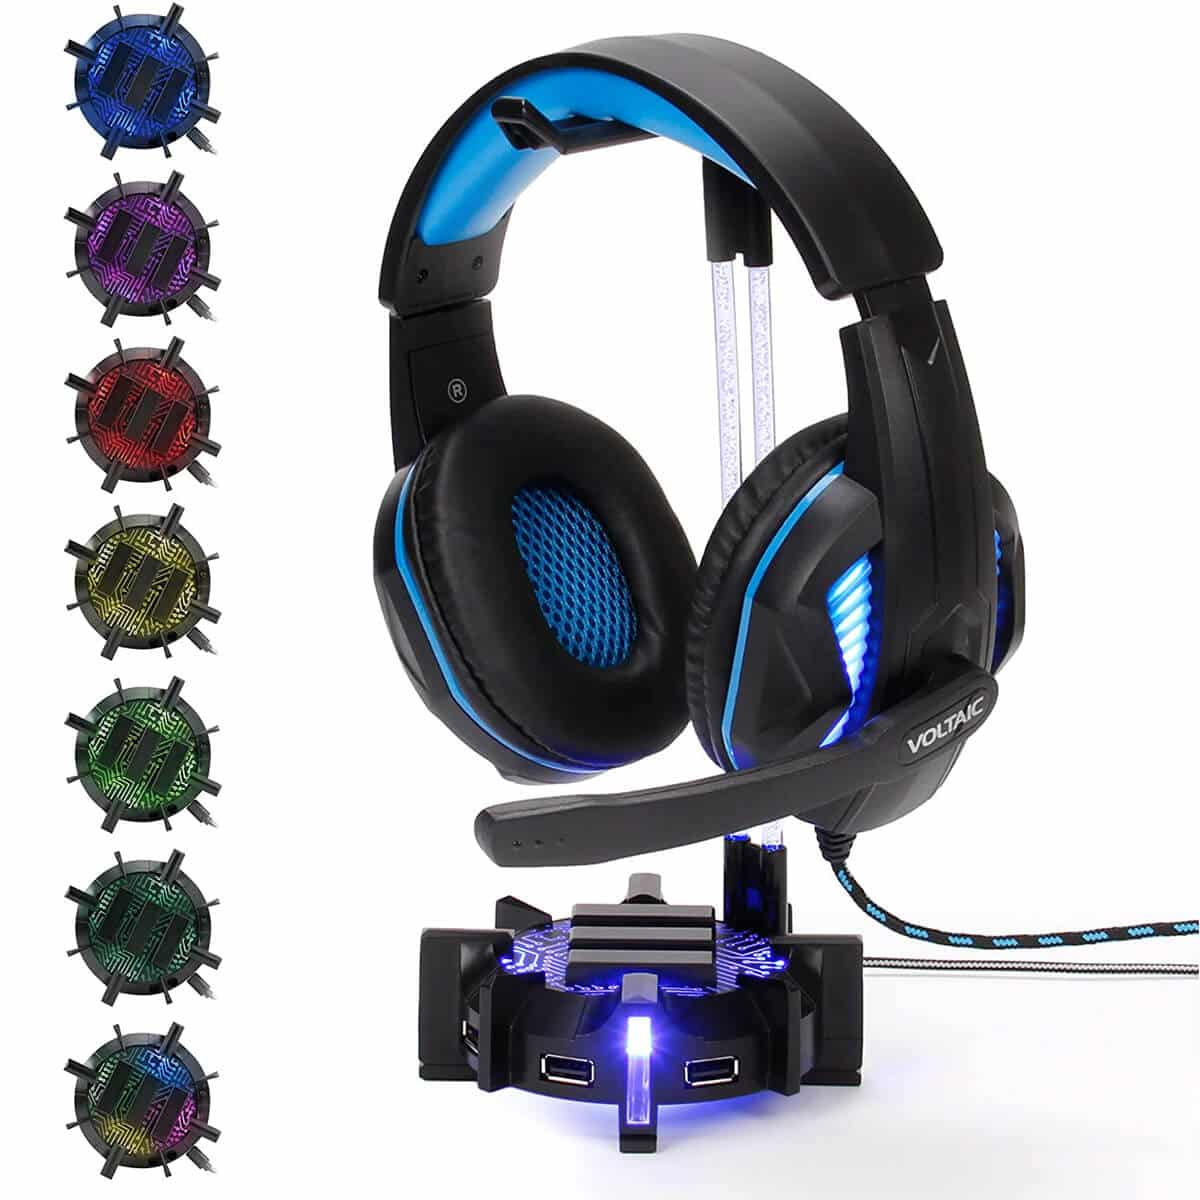 ENHANCE Gaming Headset Stand